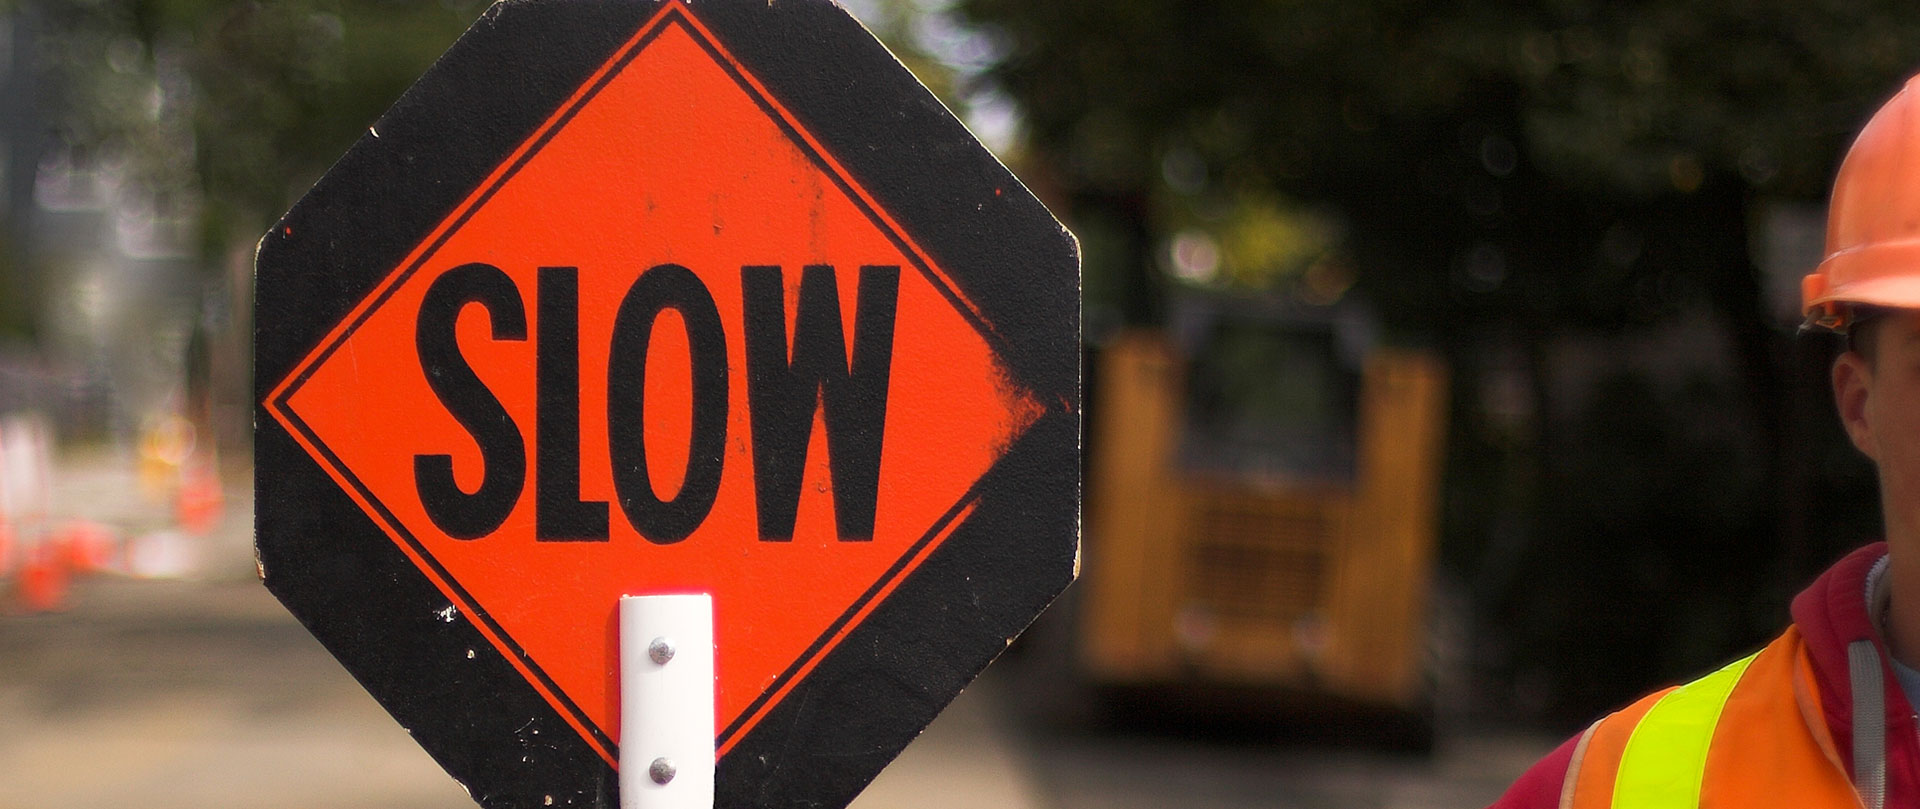 A flagger holds a SLOW sign to direct traffic and increase work zone safety.